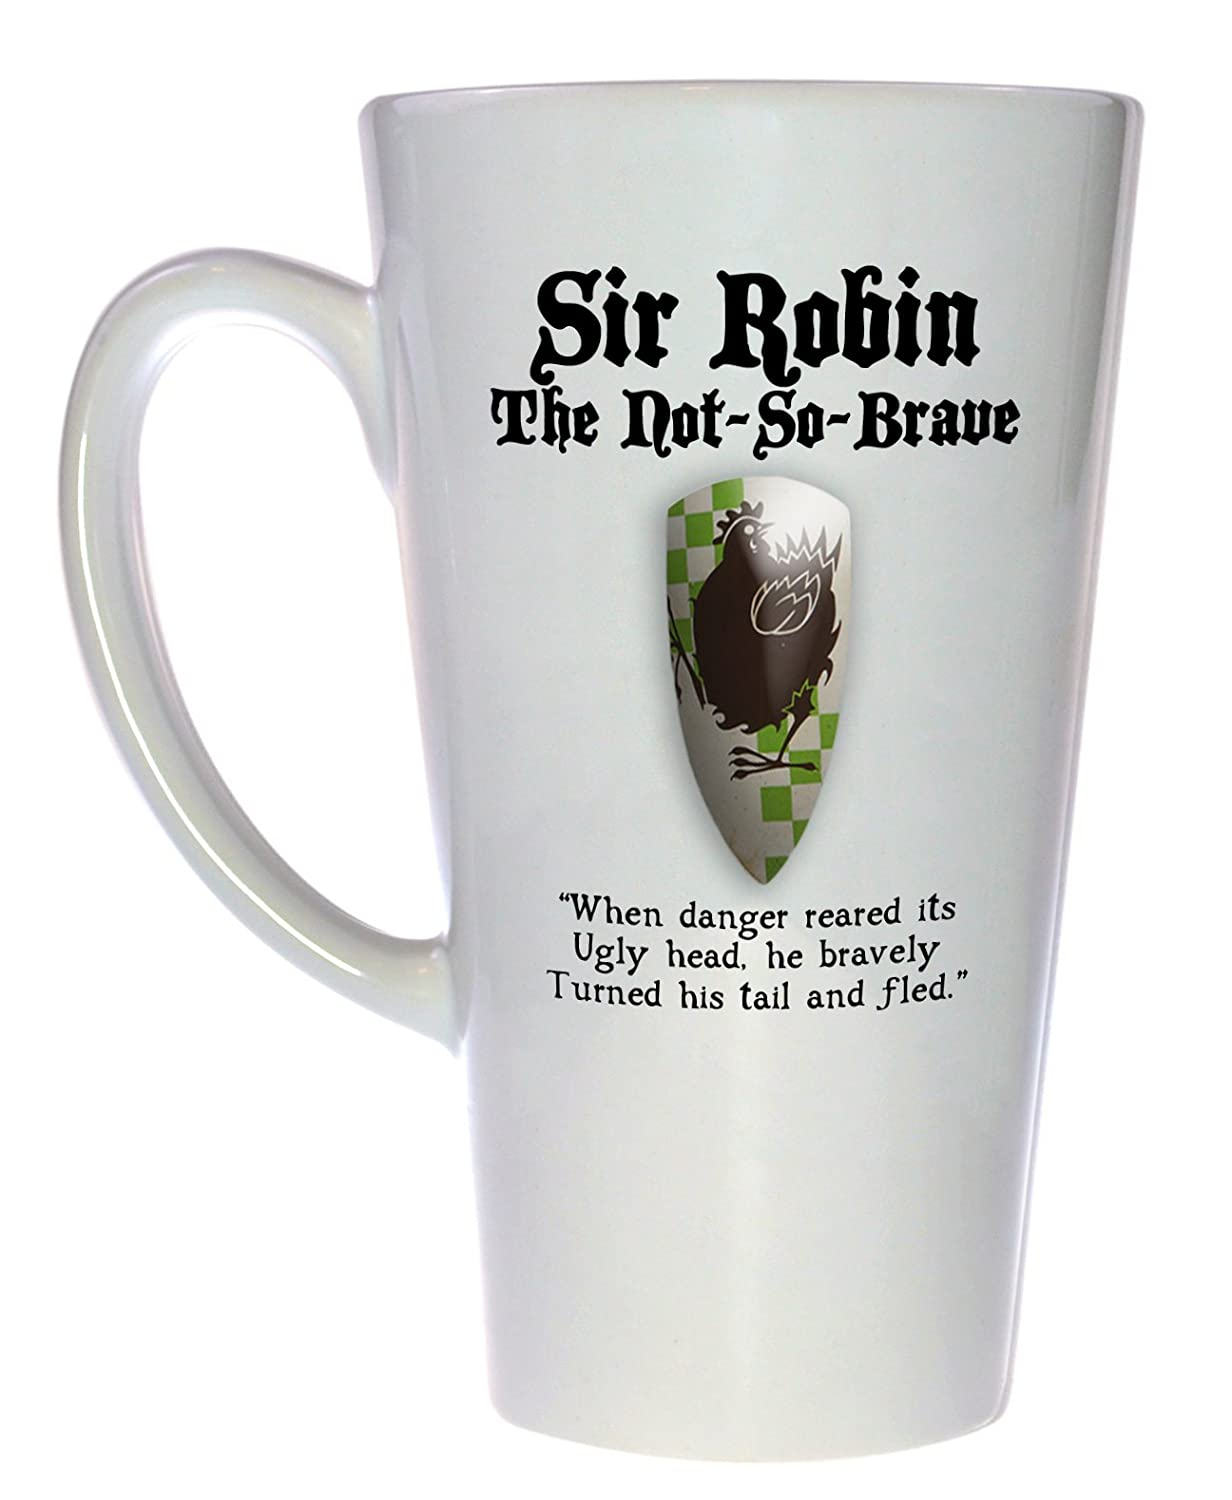 Sir Robin Monty Python and the Holy St Grail 17 Challenge the lowest price of Japan Latte ounce Tall Branded goods